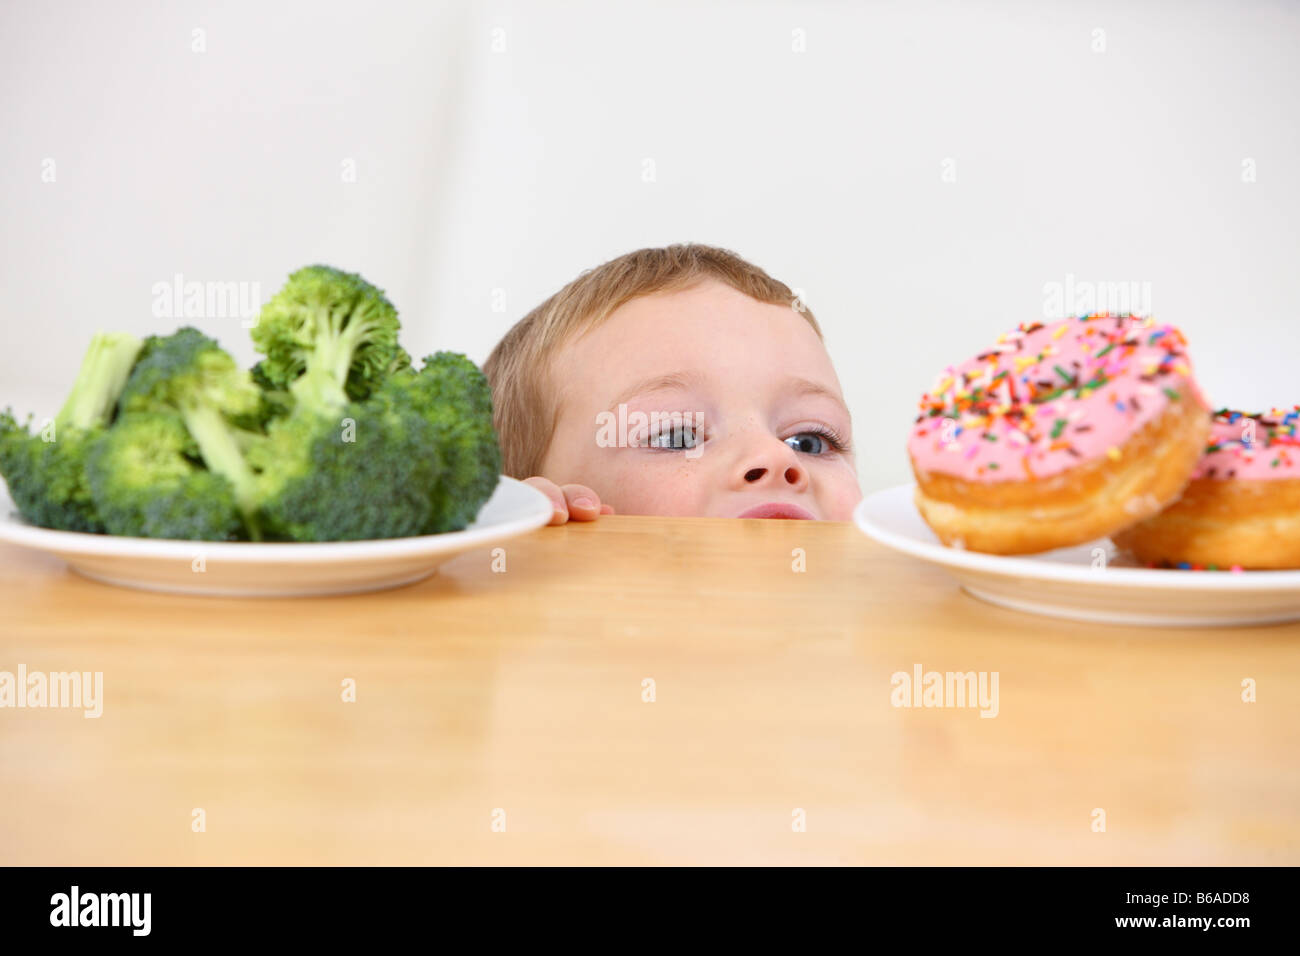 Young boy peeking over table at plates of donuts and broccoli Stock Photo